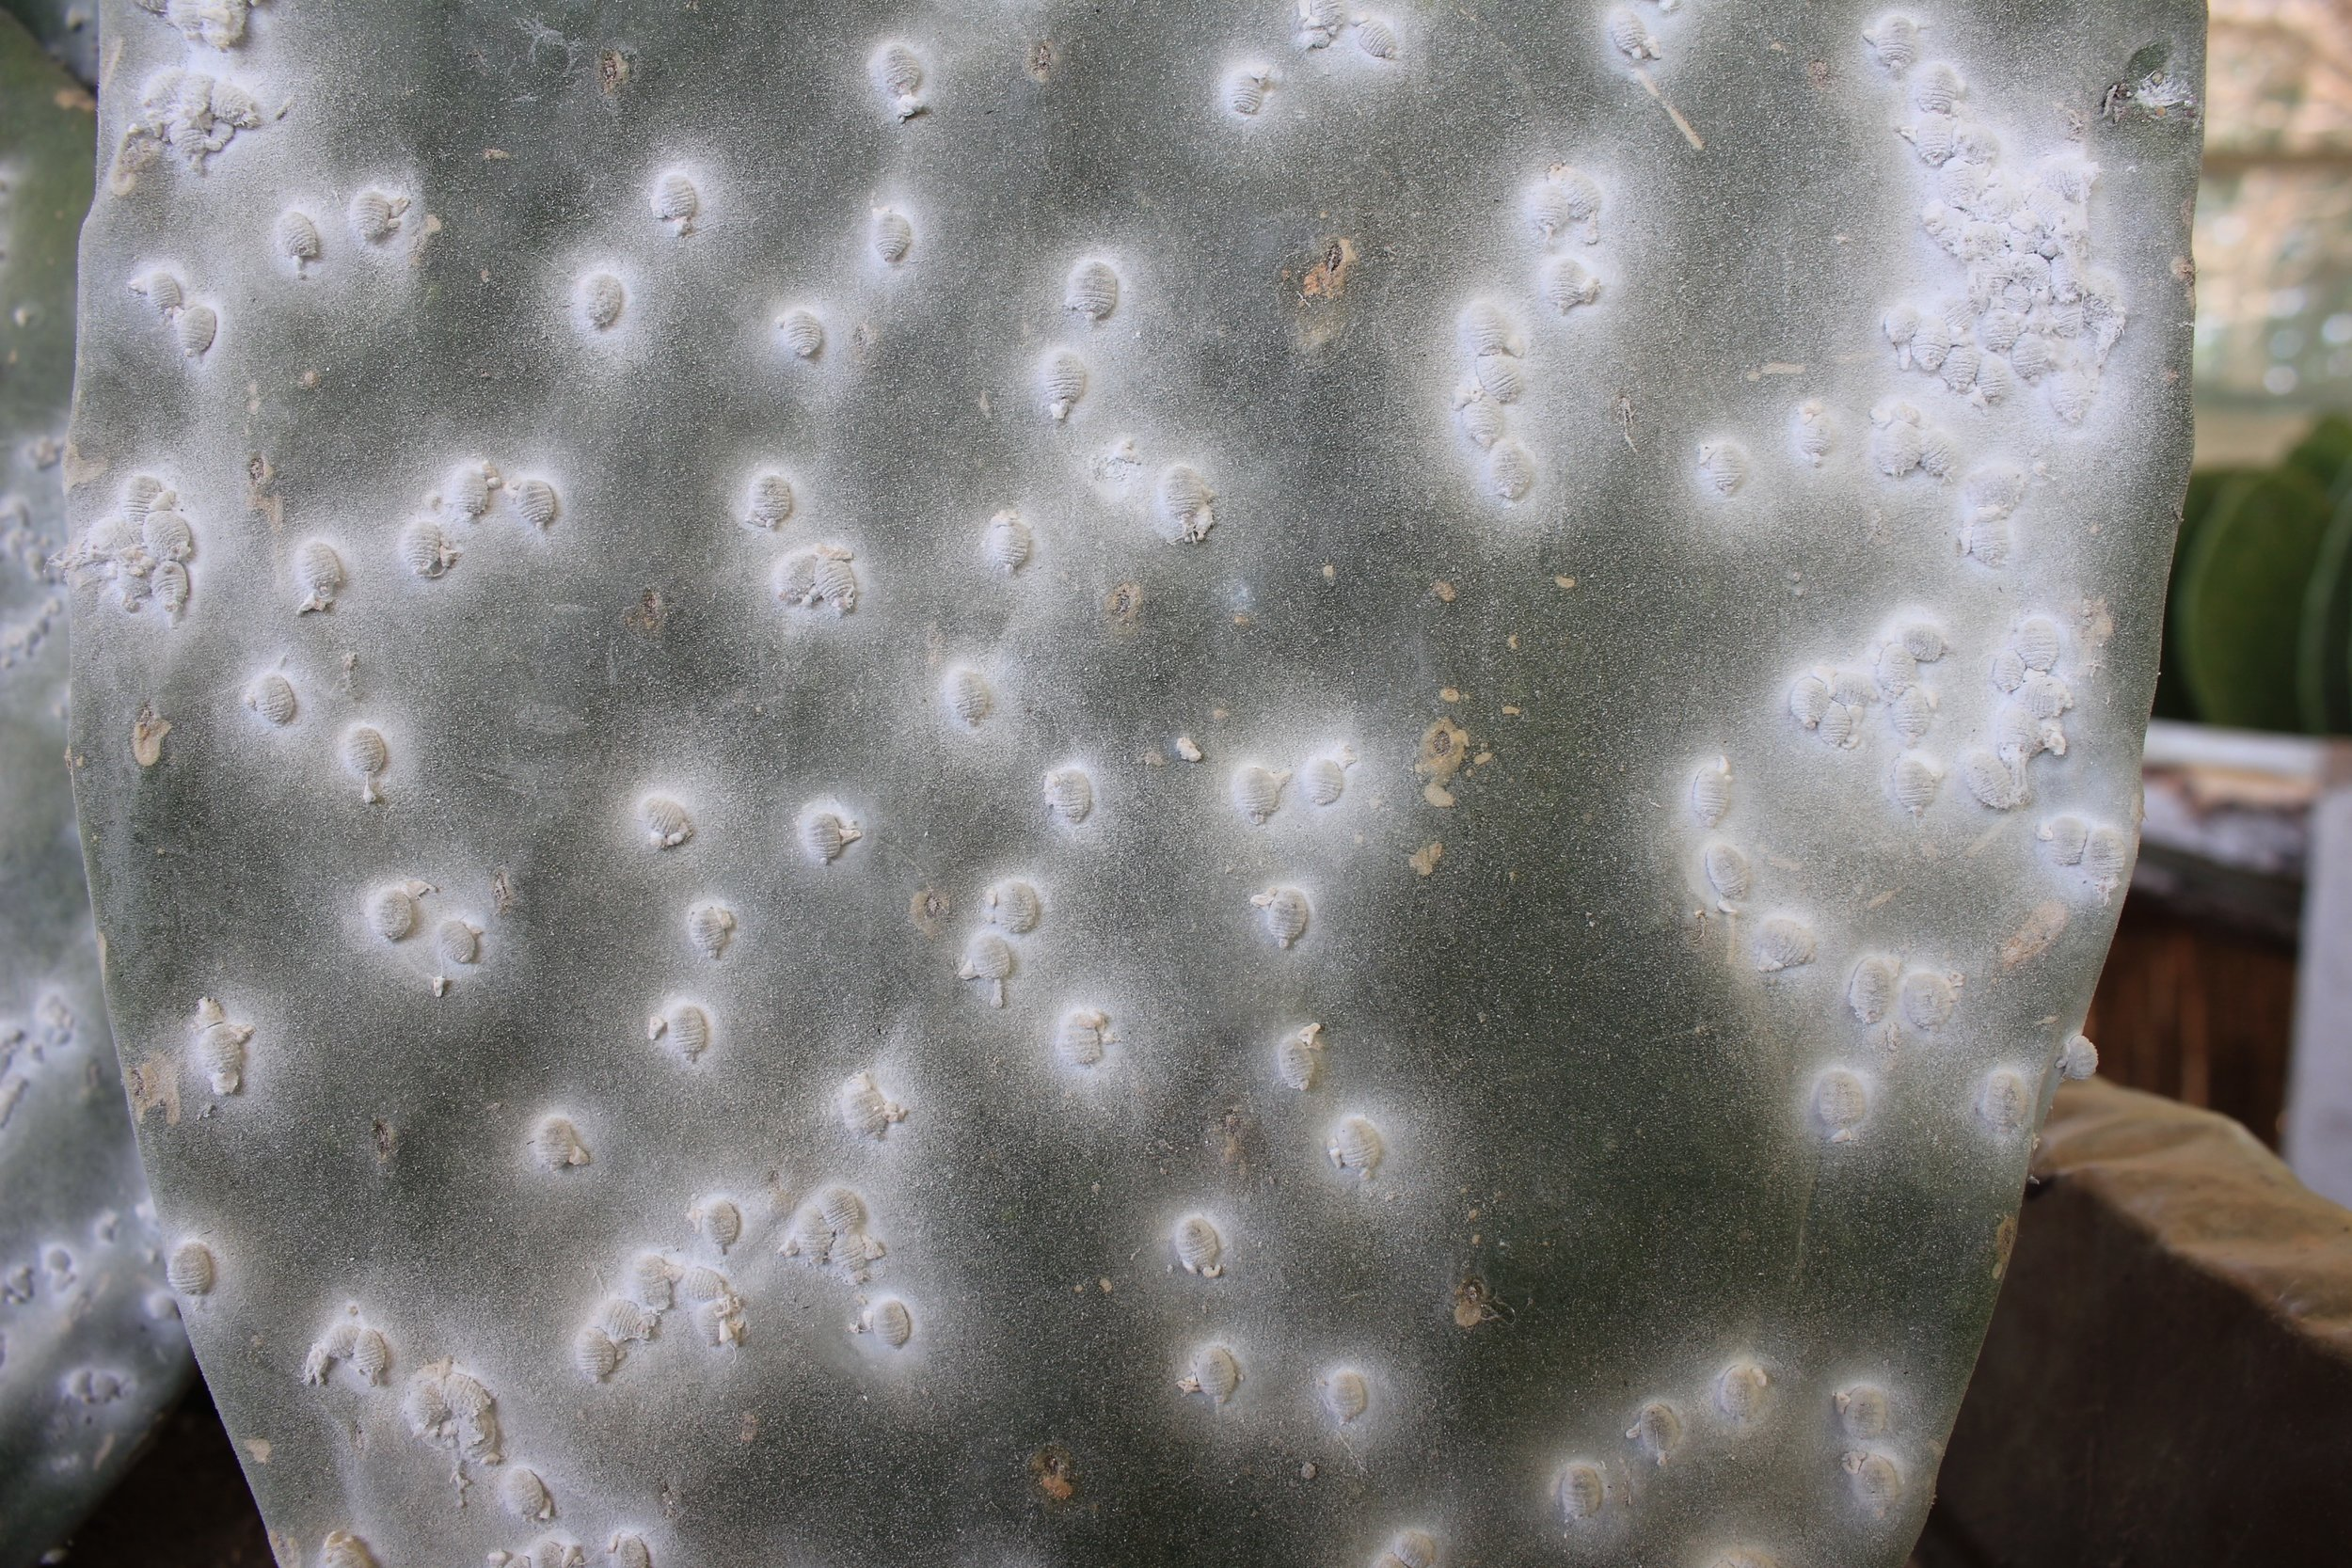 A close up view of female cochineal infesting a cactus paddle